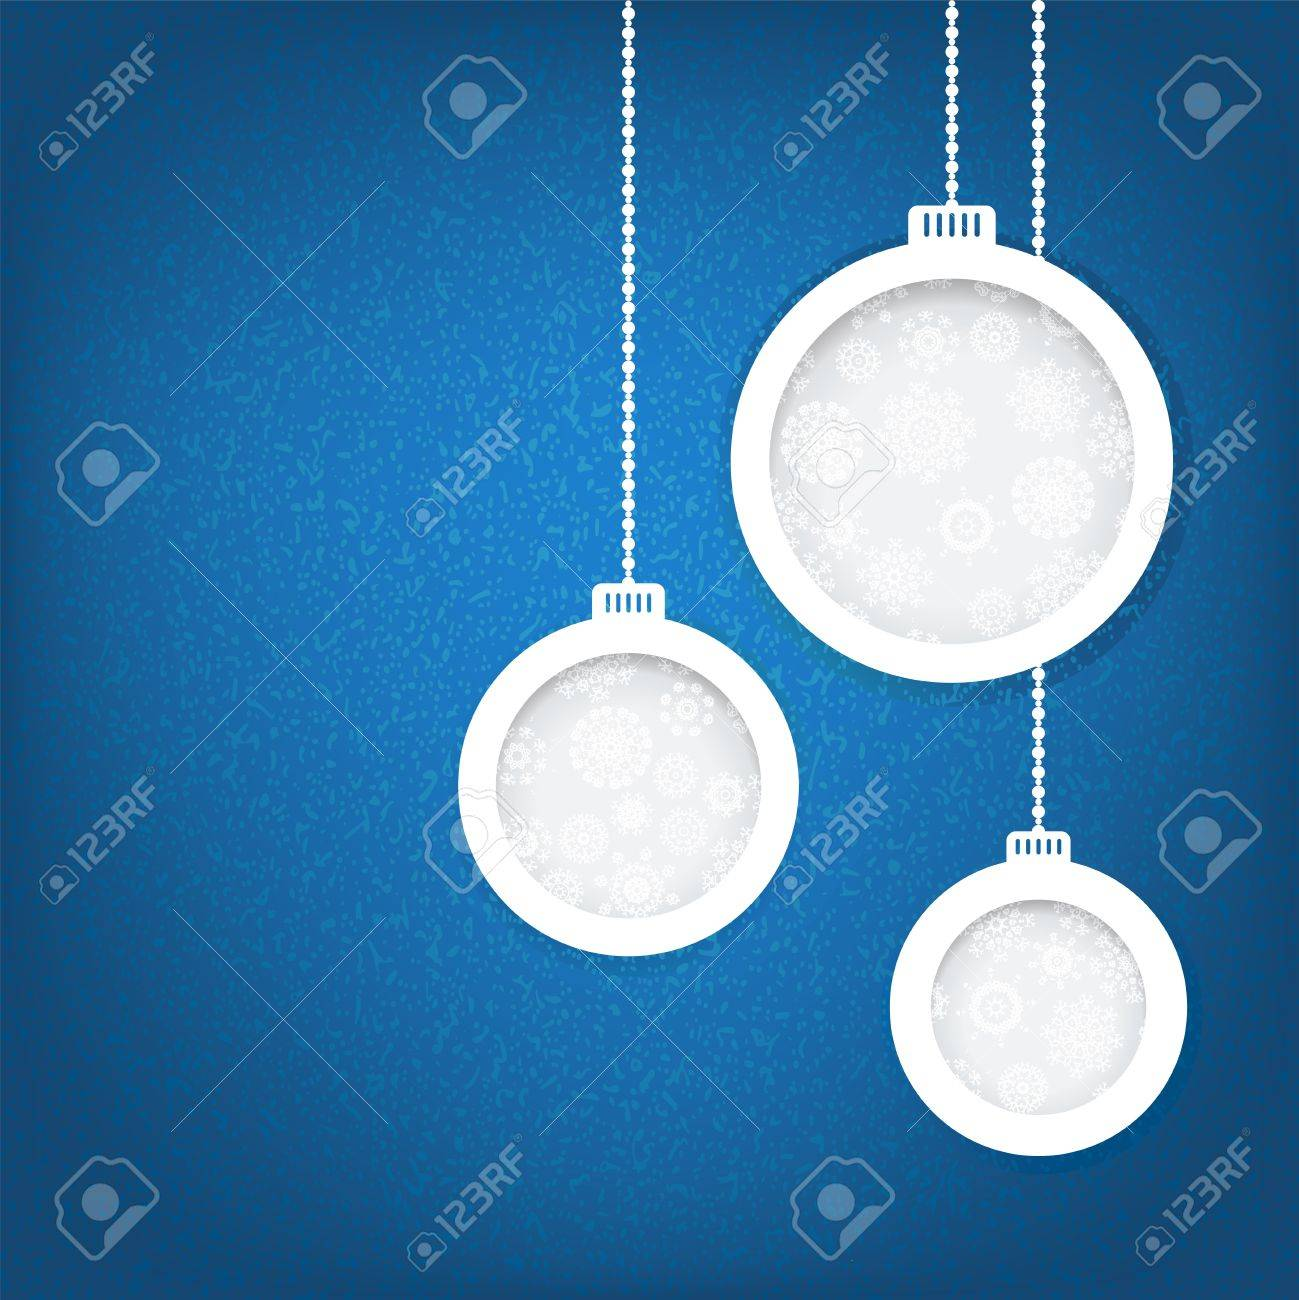 Christmas balls cut from paper concept    EPS8 Stock Photo - 17525412